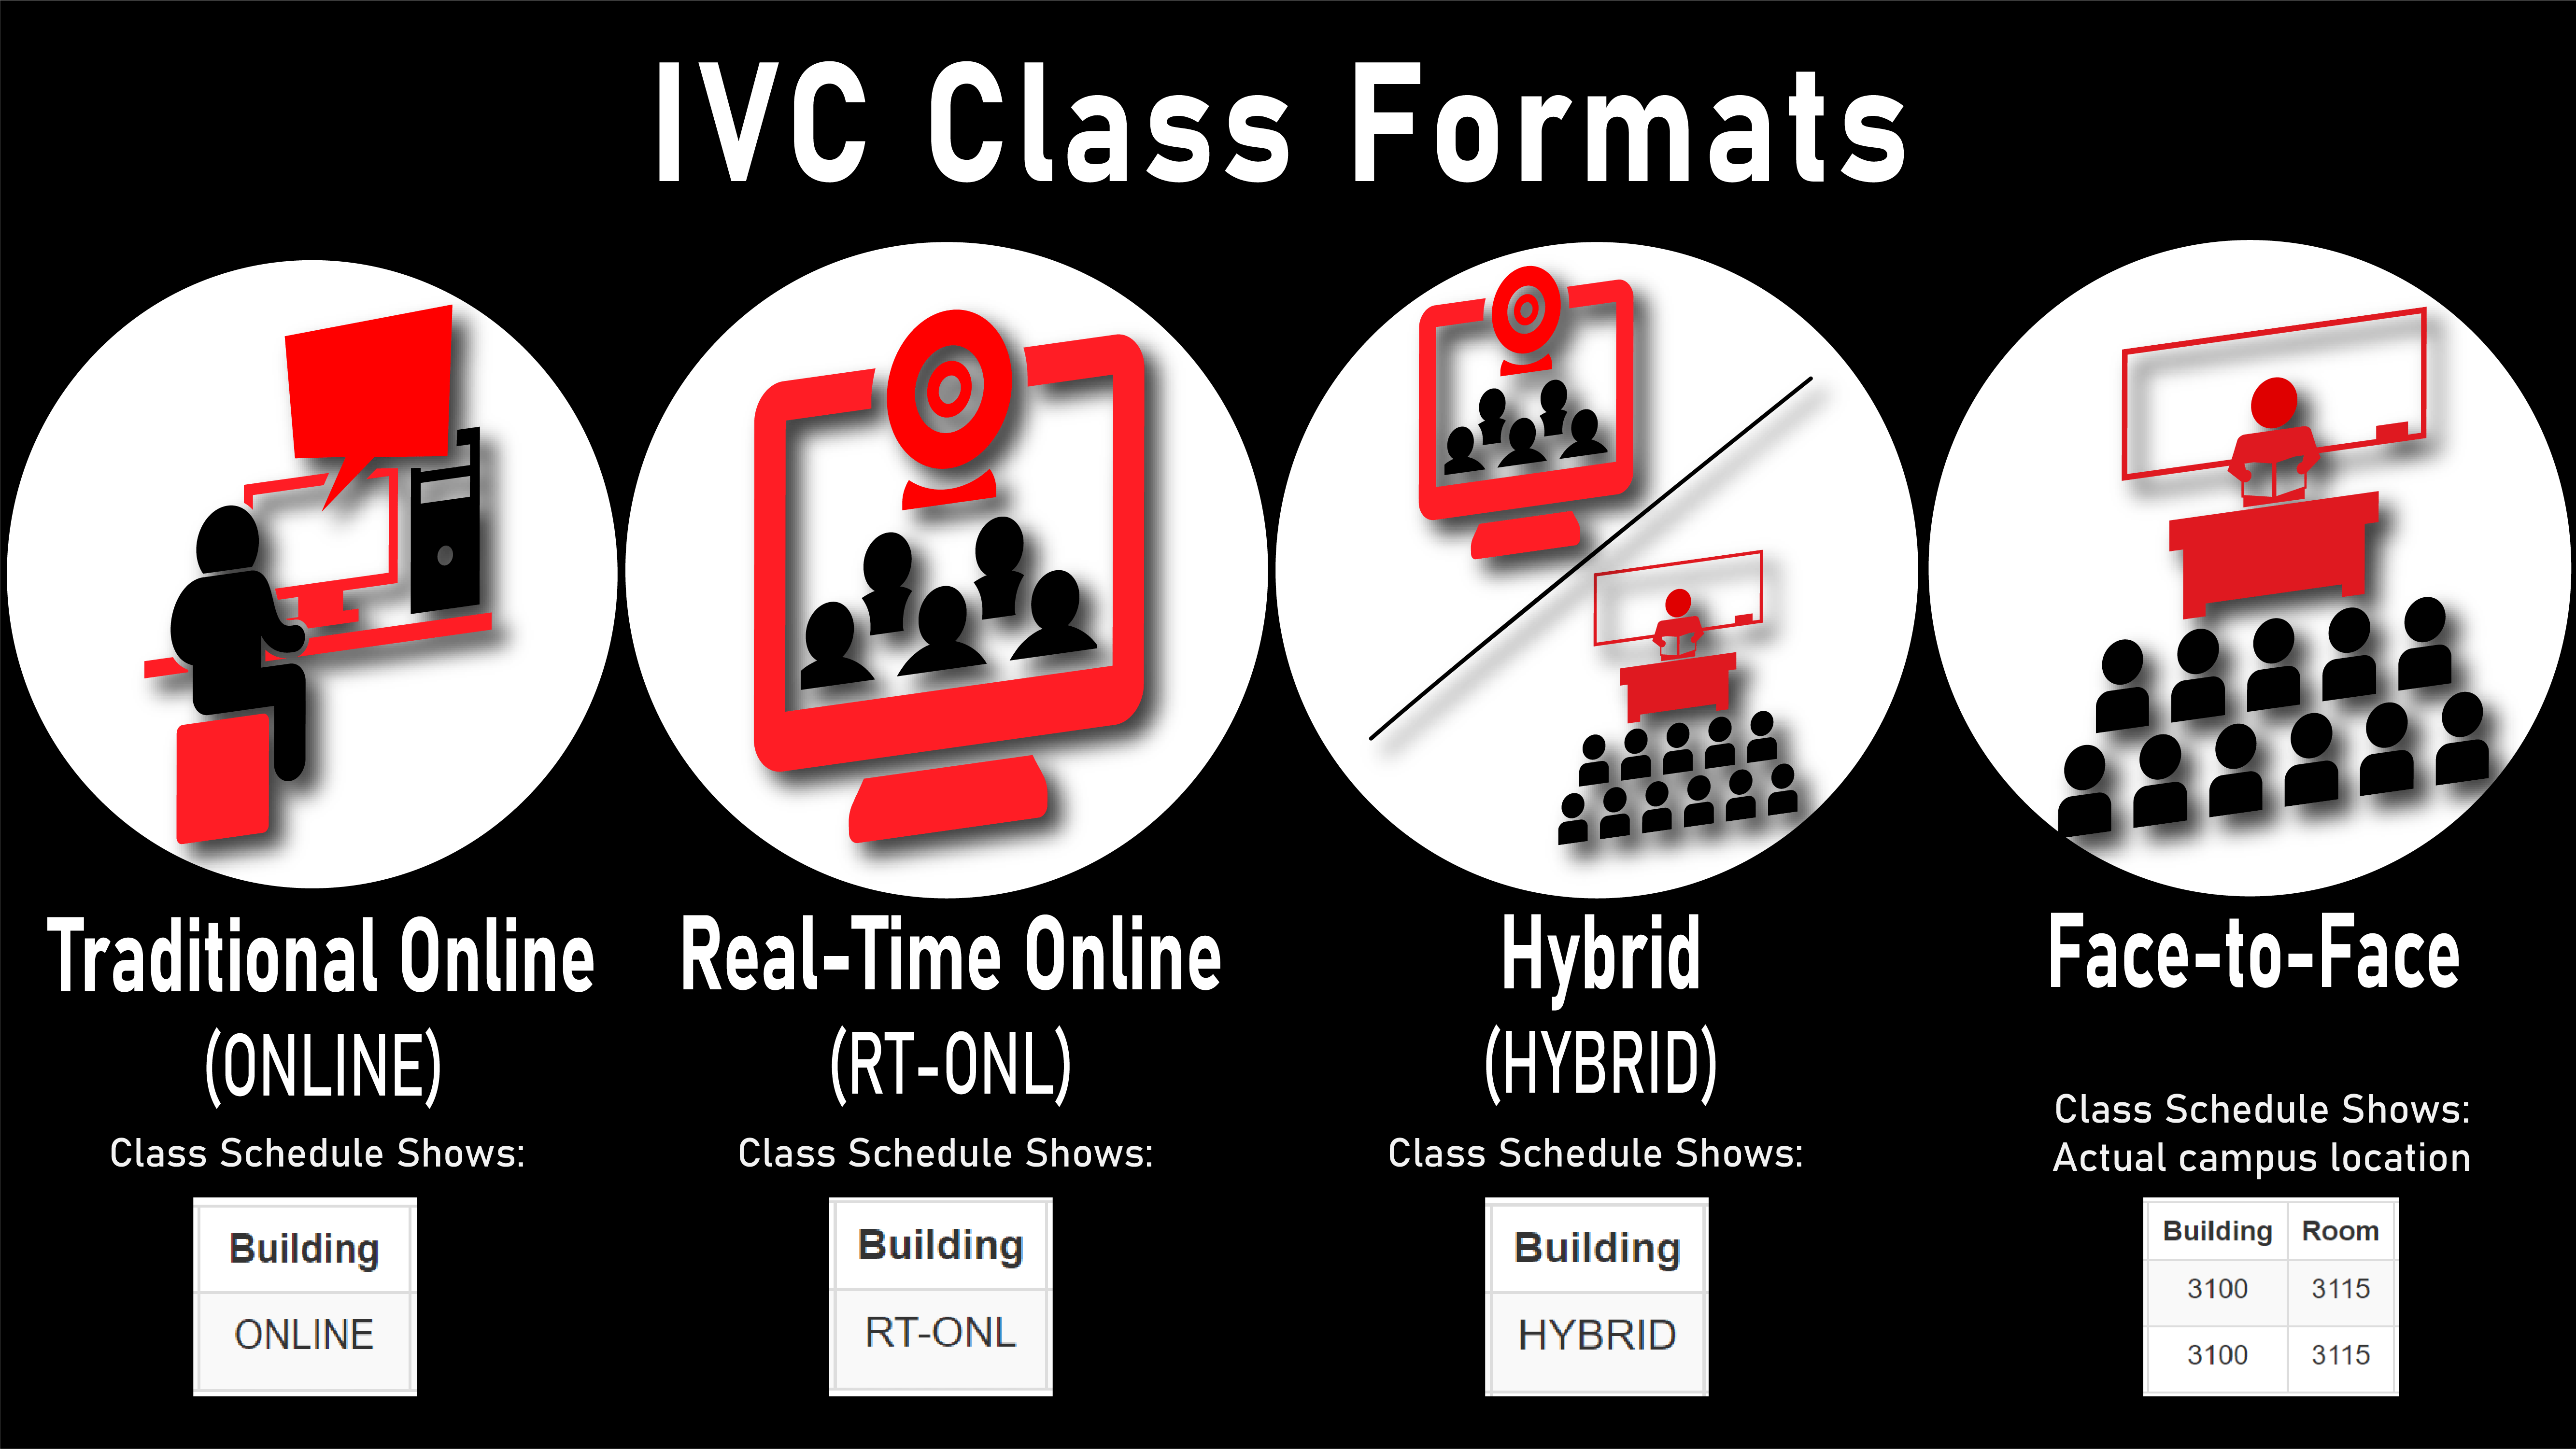 IVC Class Formats Information